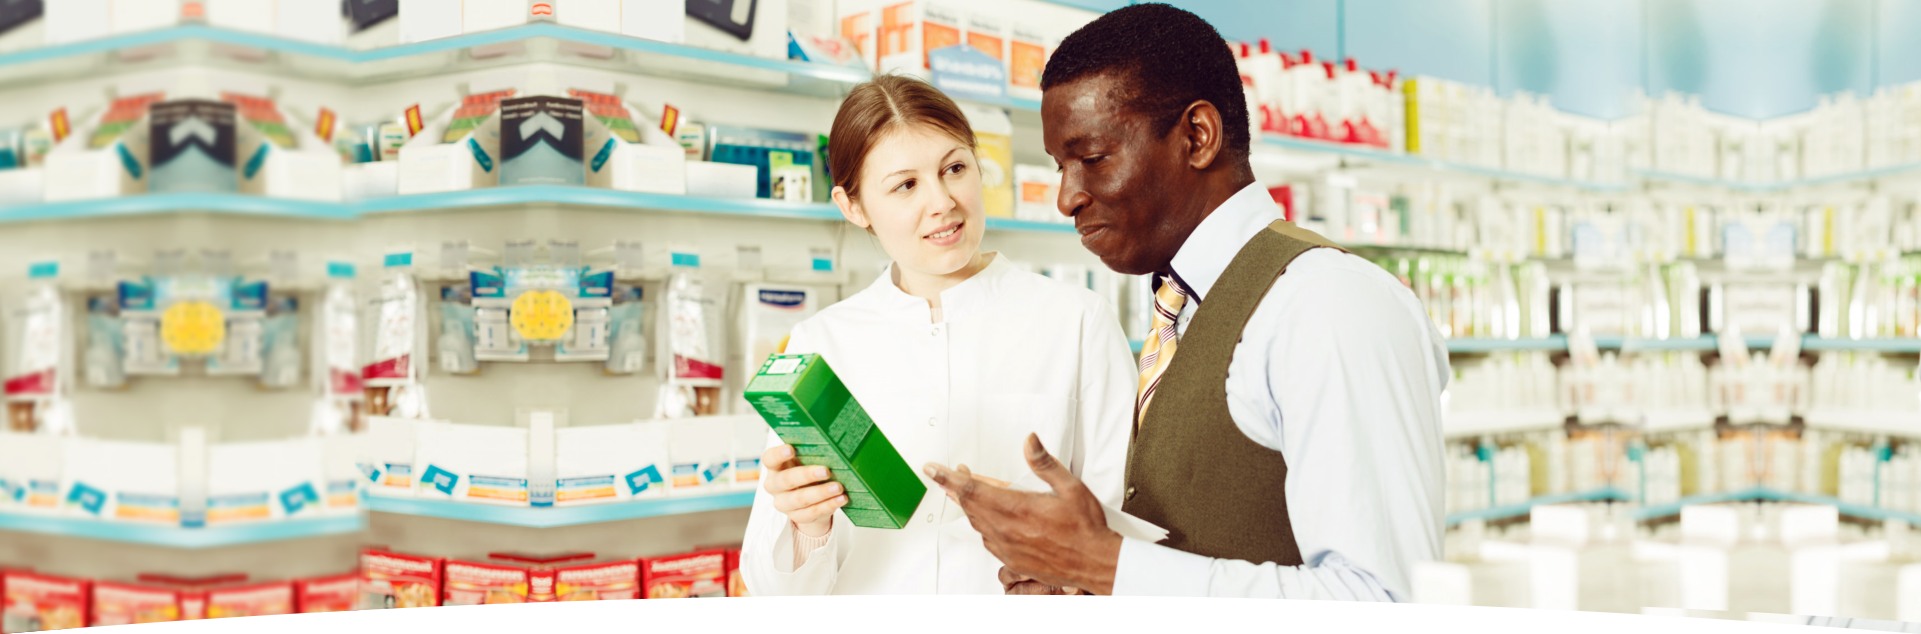 Pharmacist and customer in pharmacy 4